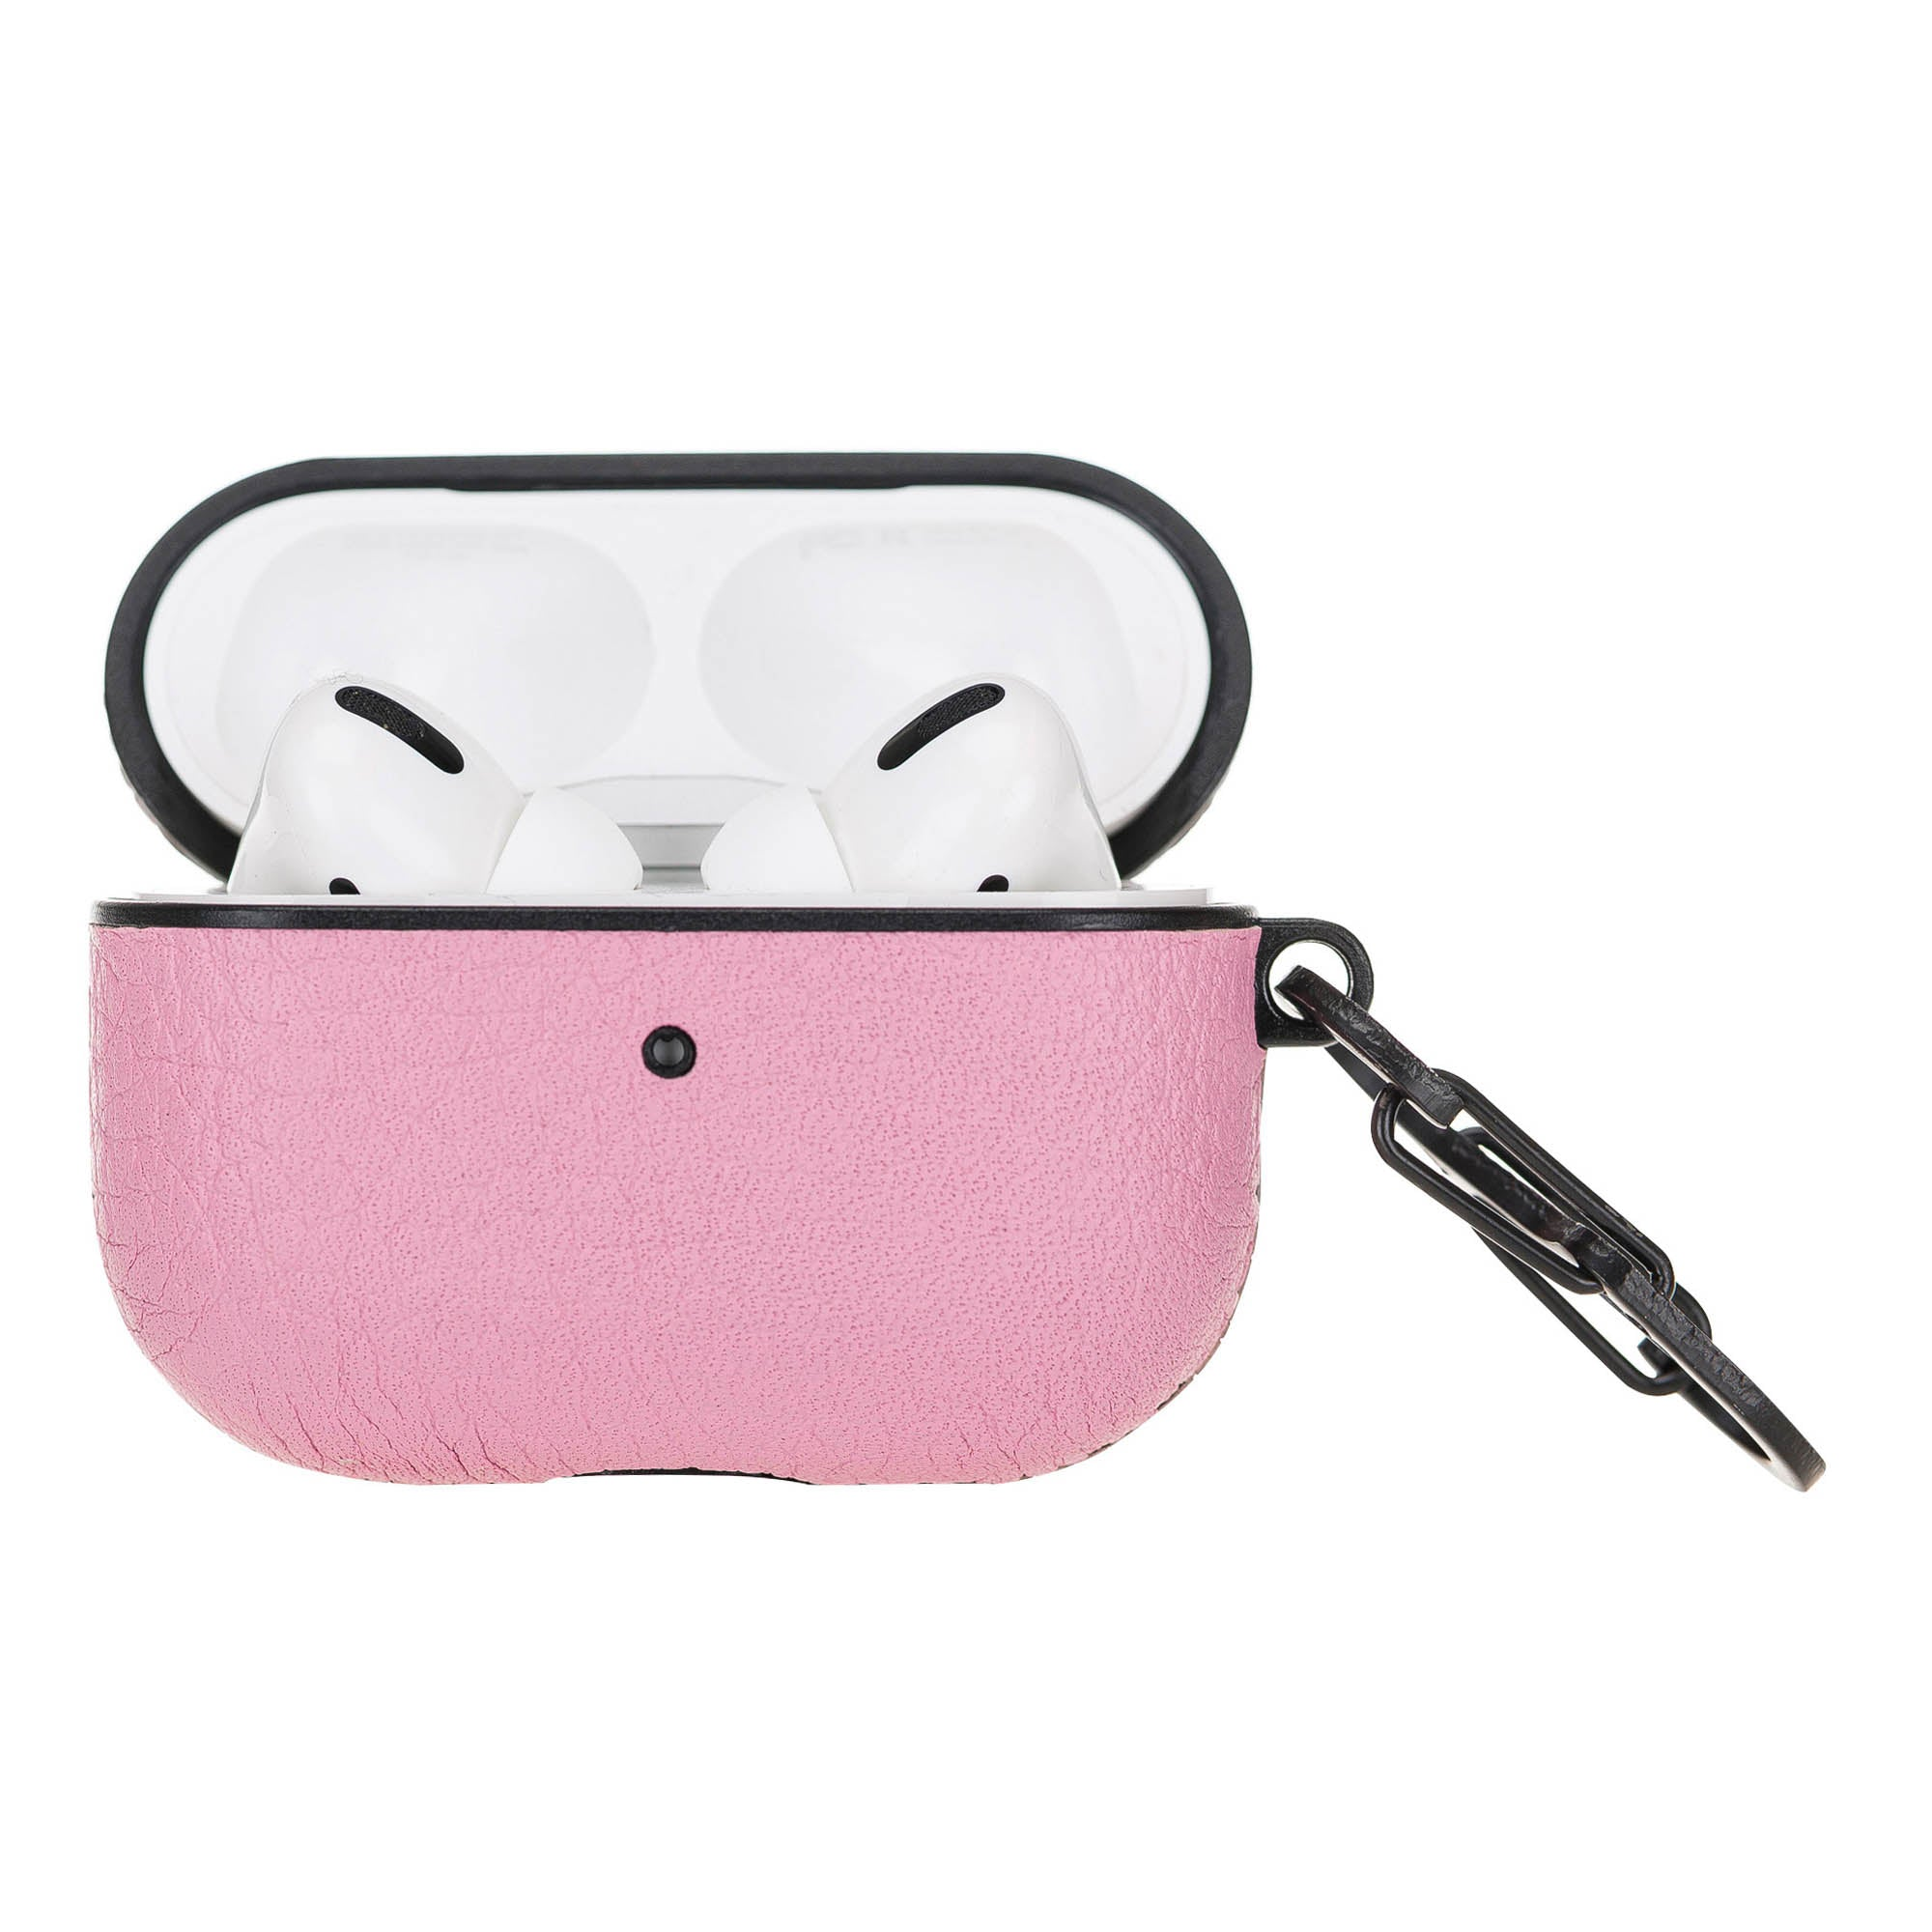 Juni Leather Capsule Case for AirPods Pro - PINK - saracleather